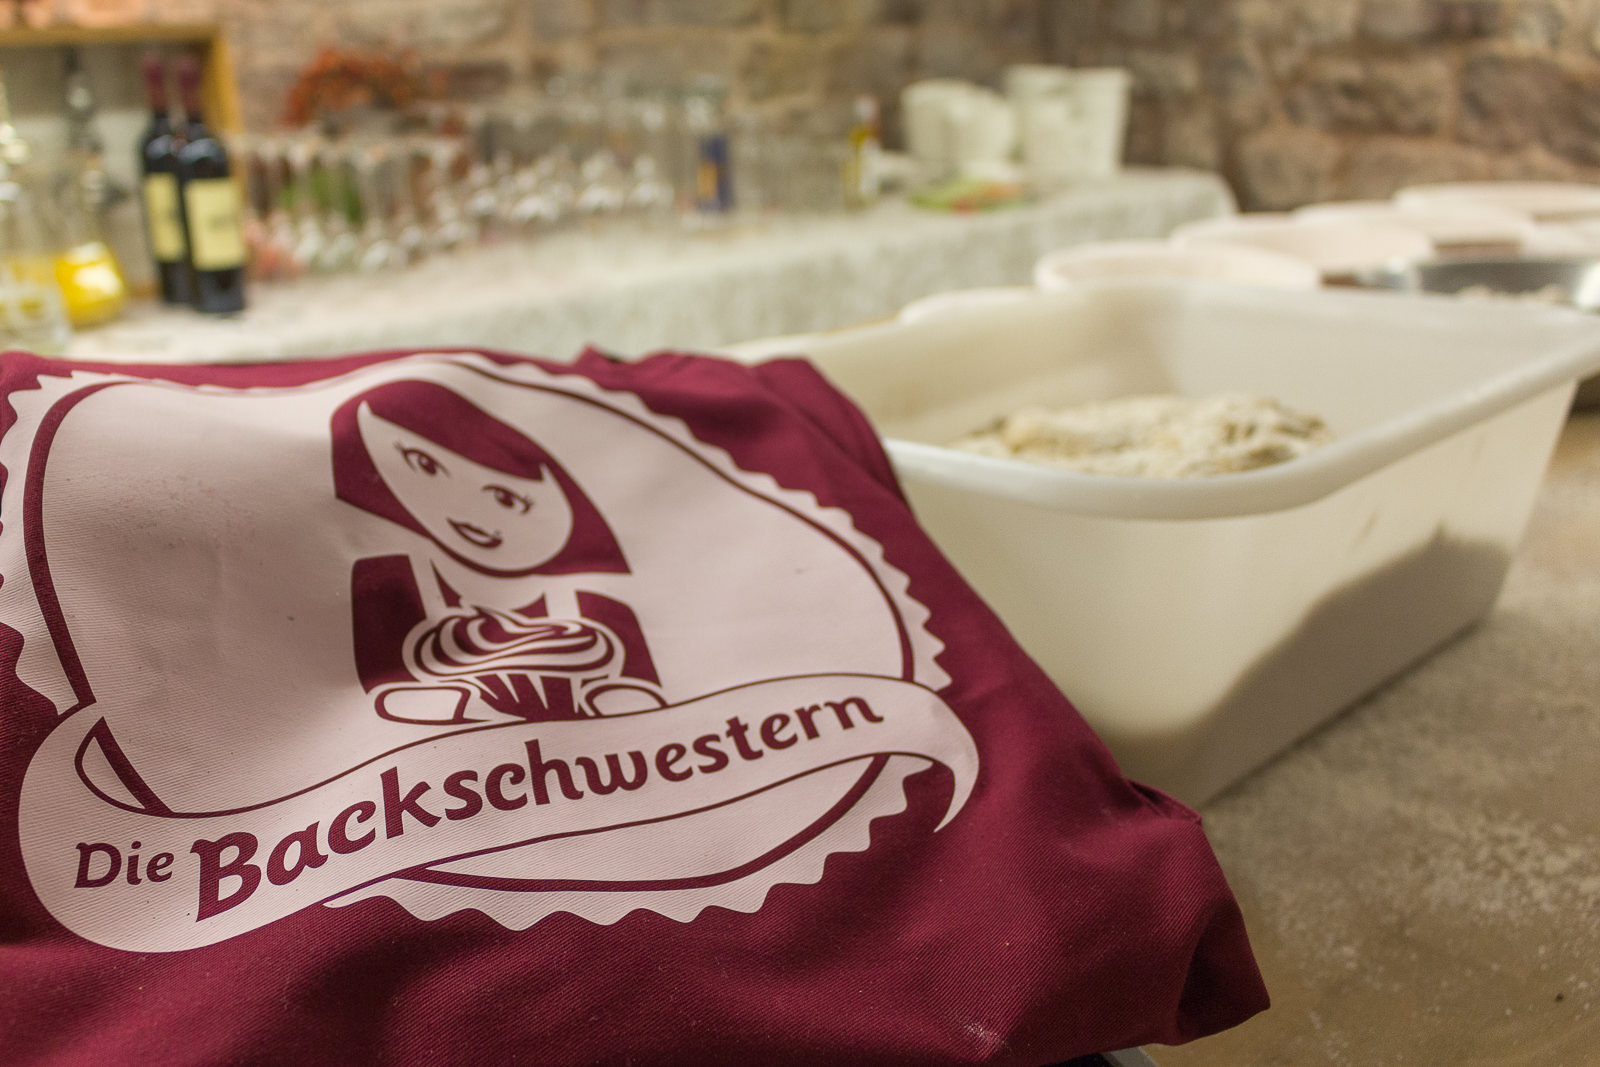 backschwestern, saarland, genussreise, brot backen